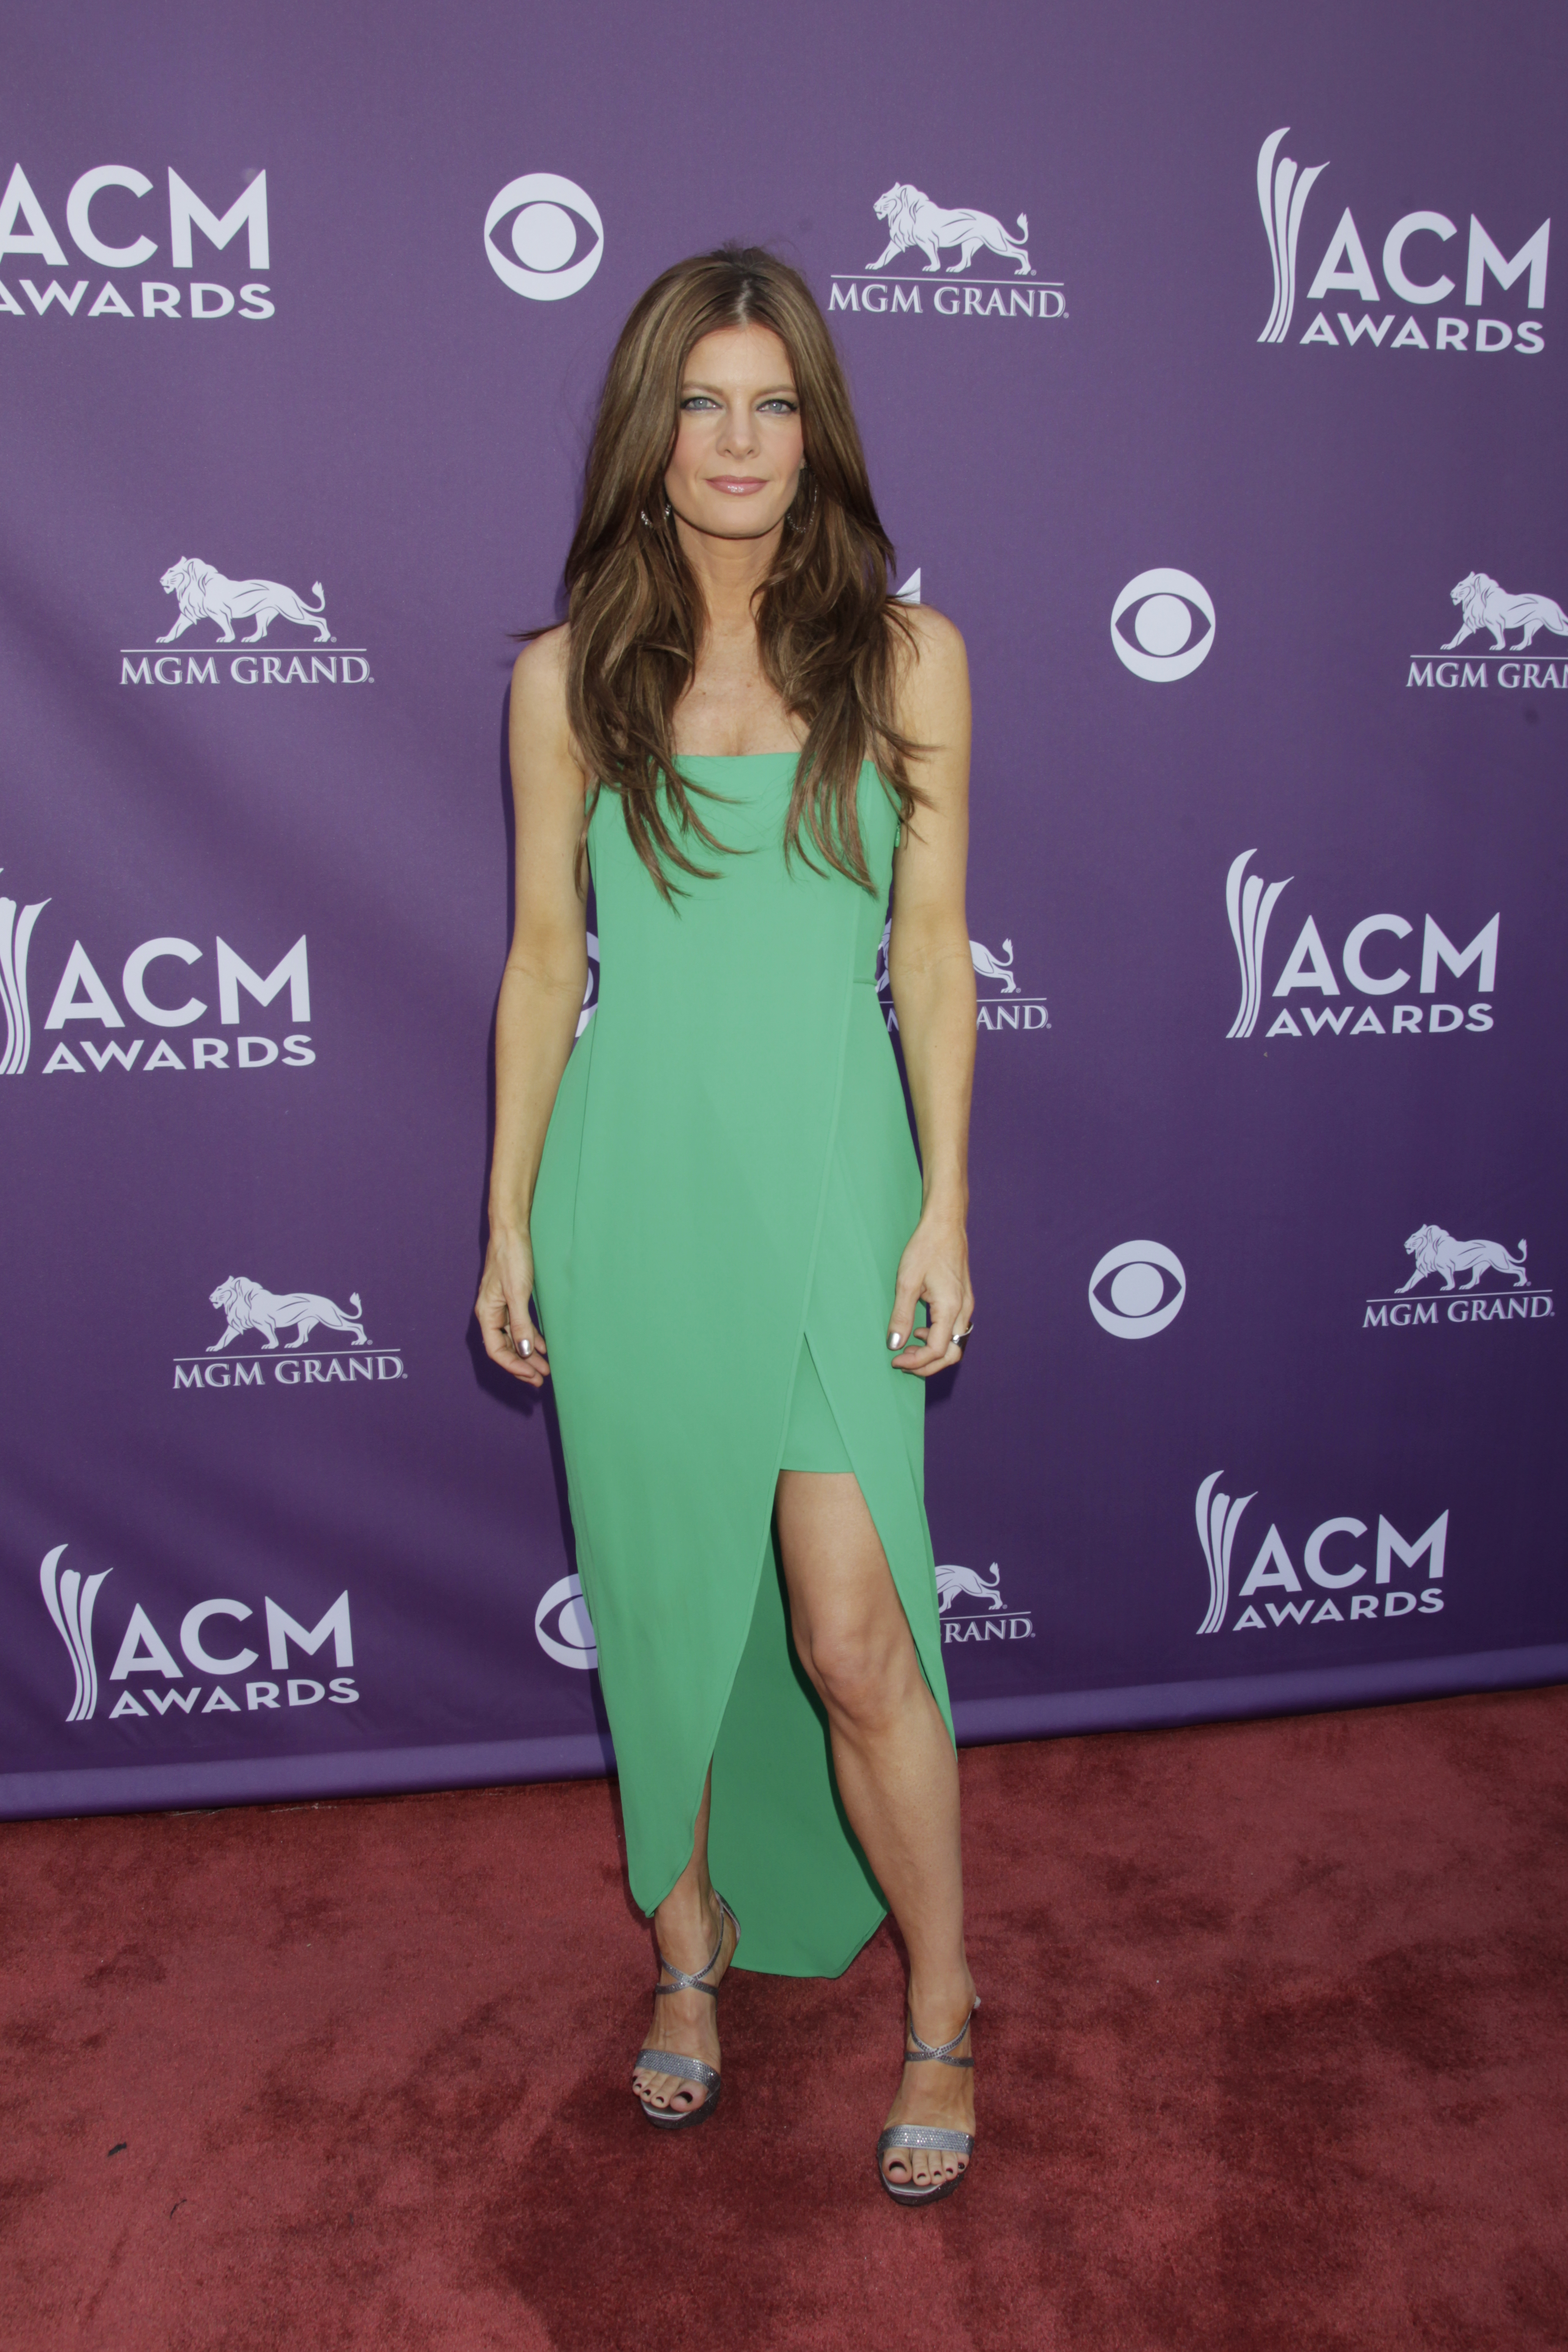 Michelle Stafford on the Red Carpet - 48th ACM Awards